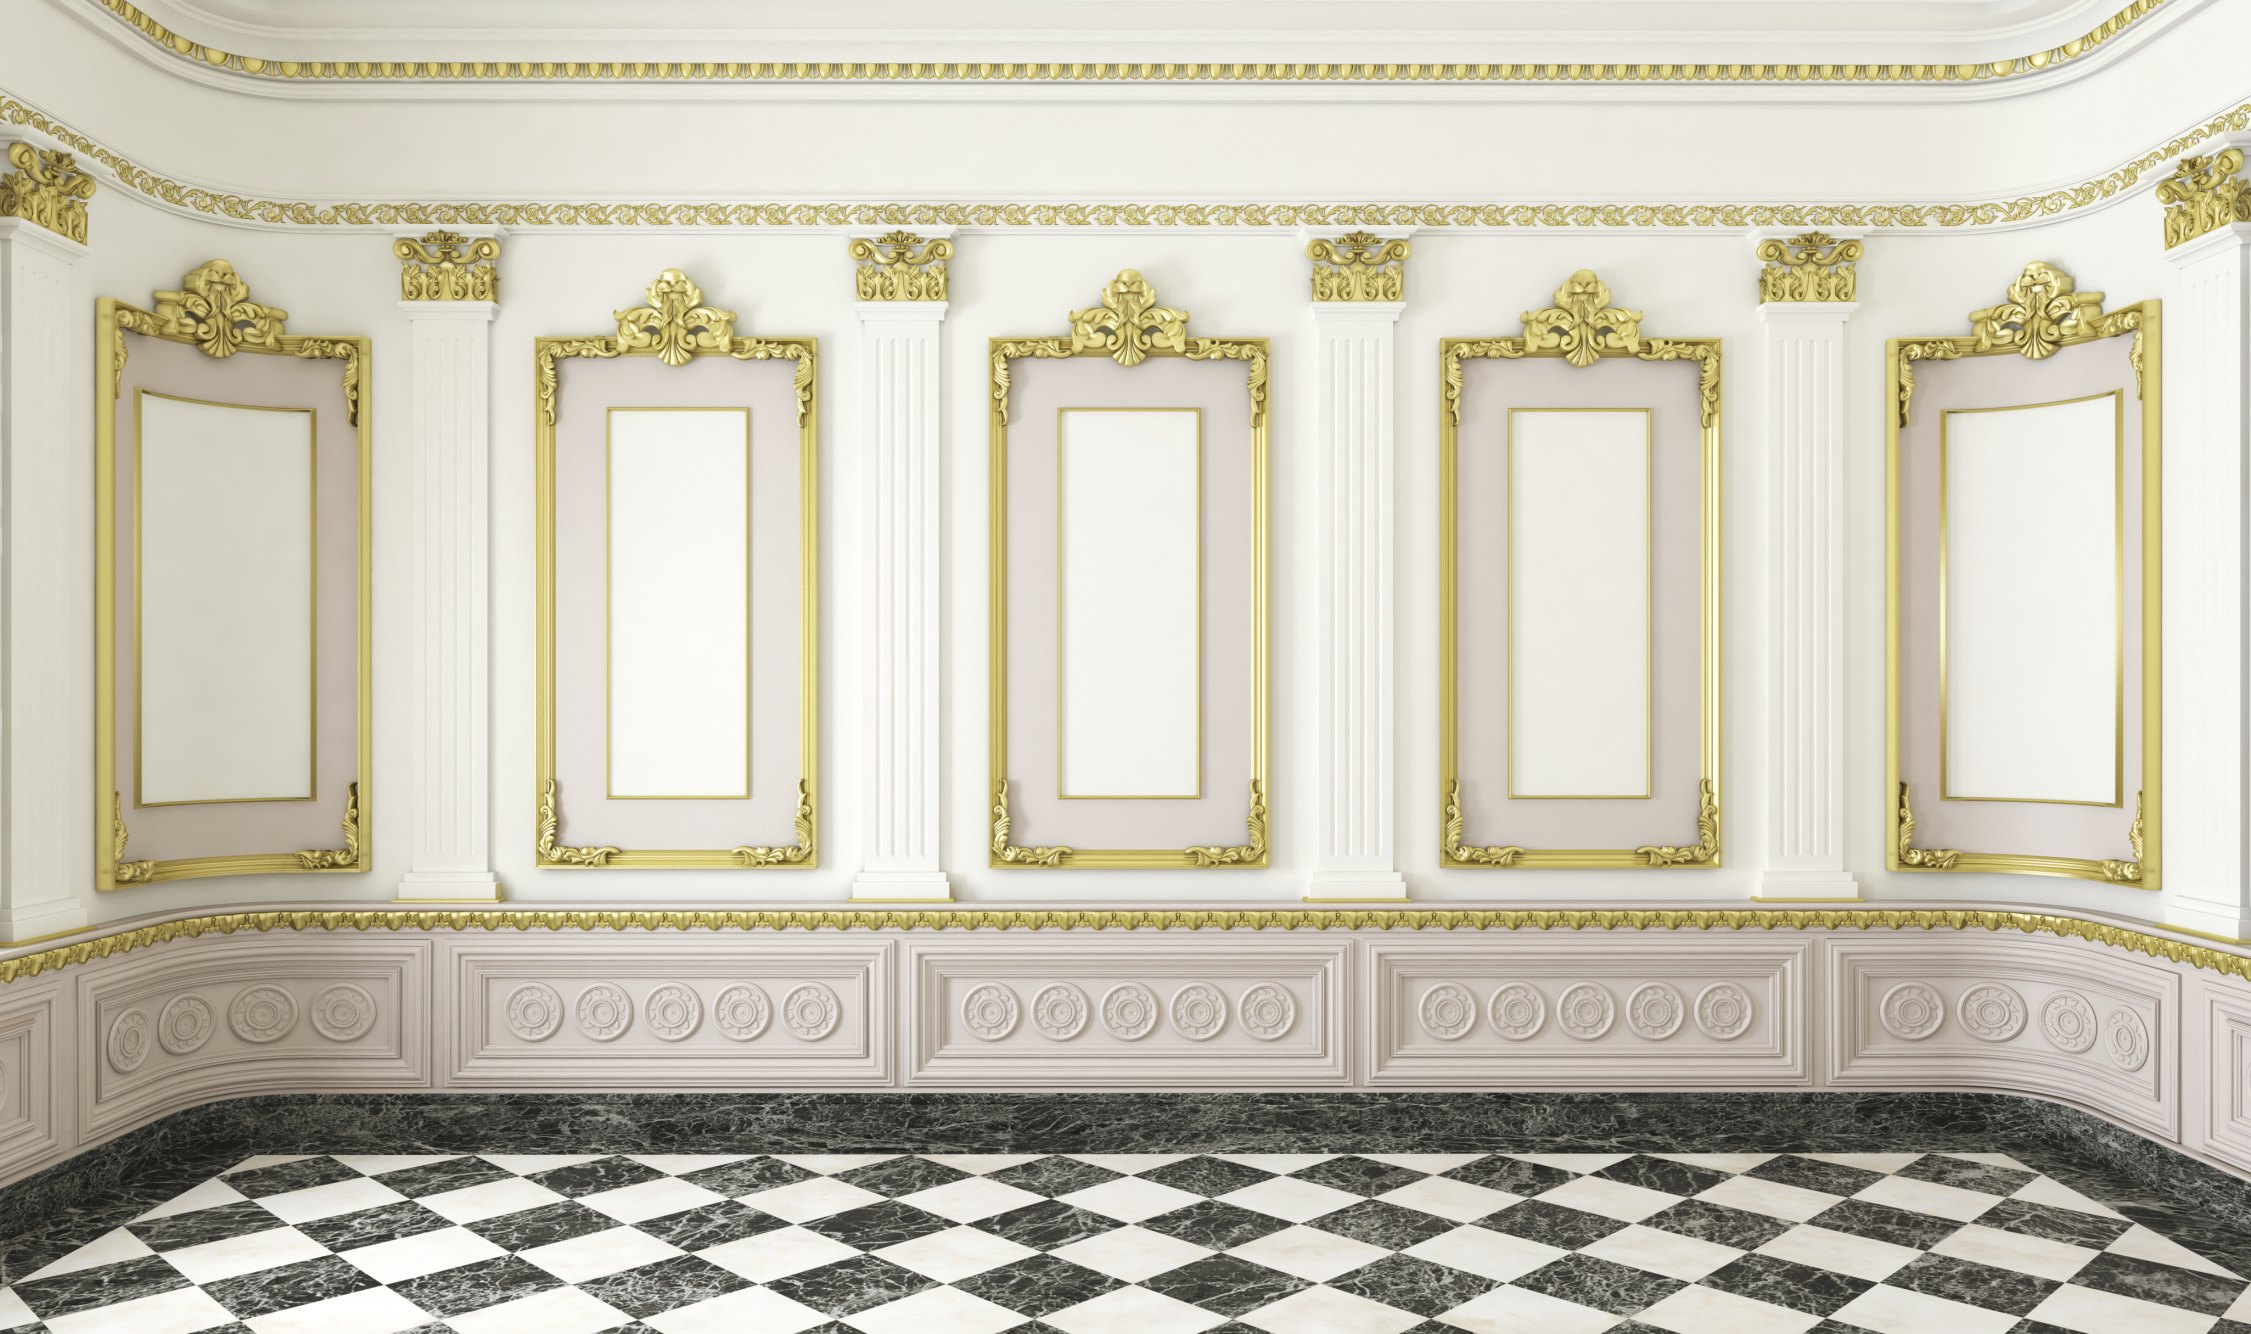 Wall molding decorating ideas with pictures ehow for Decorative wall trim ideas